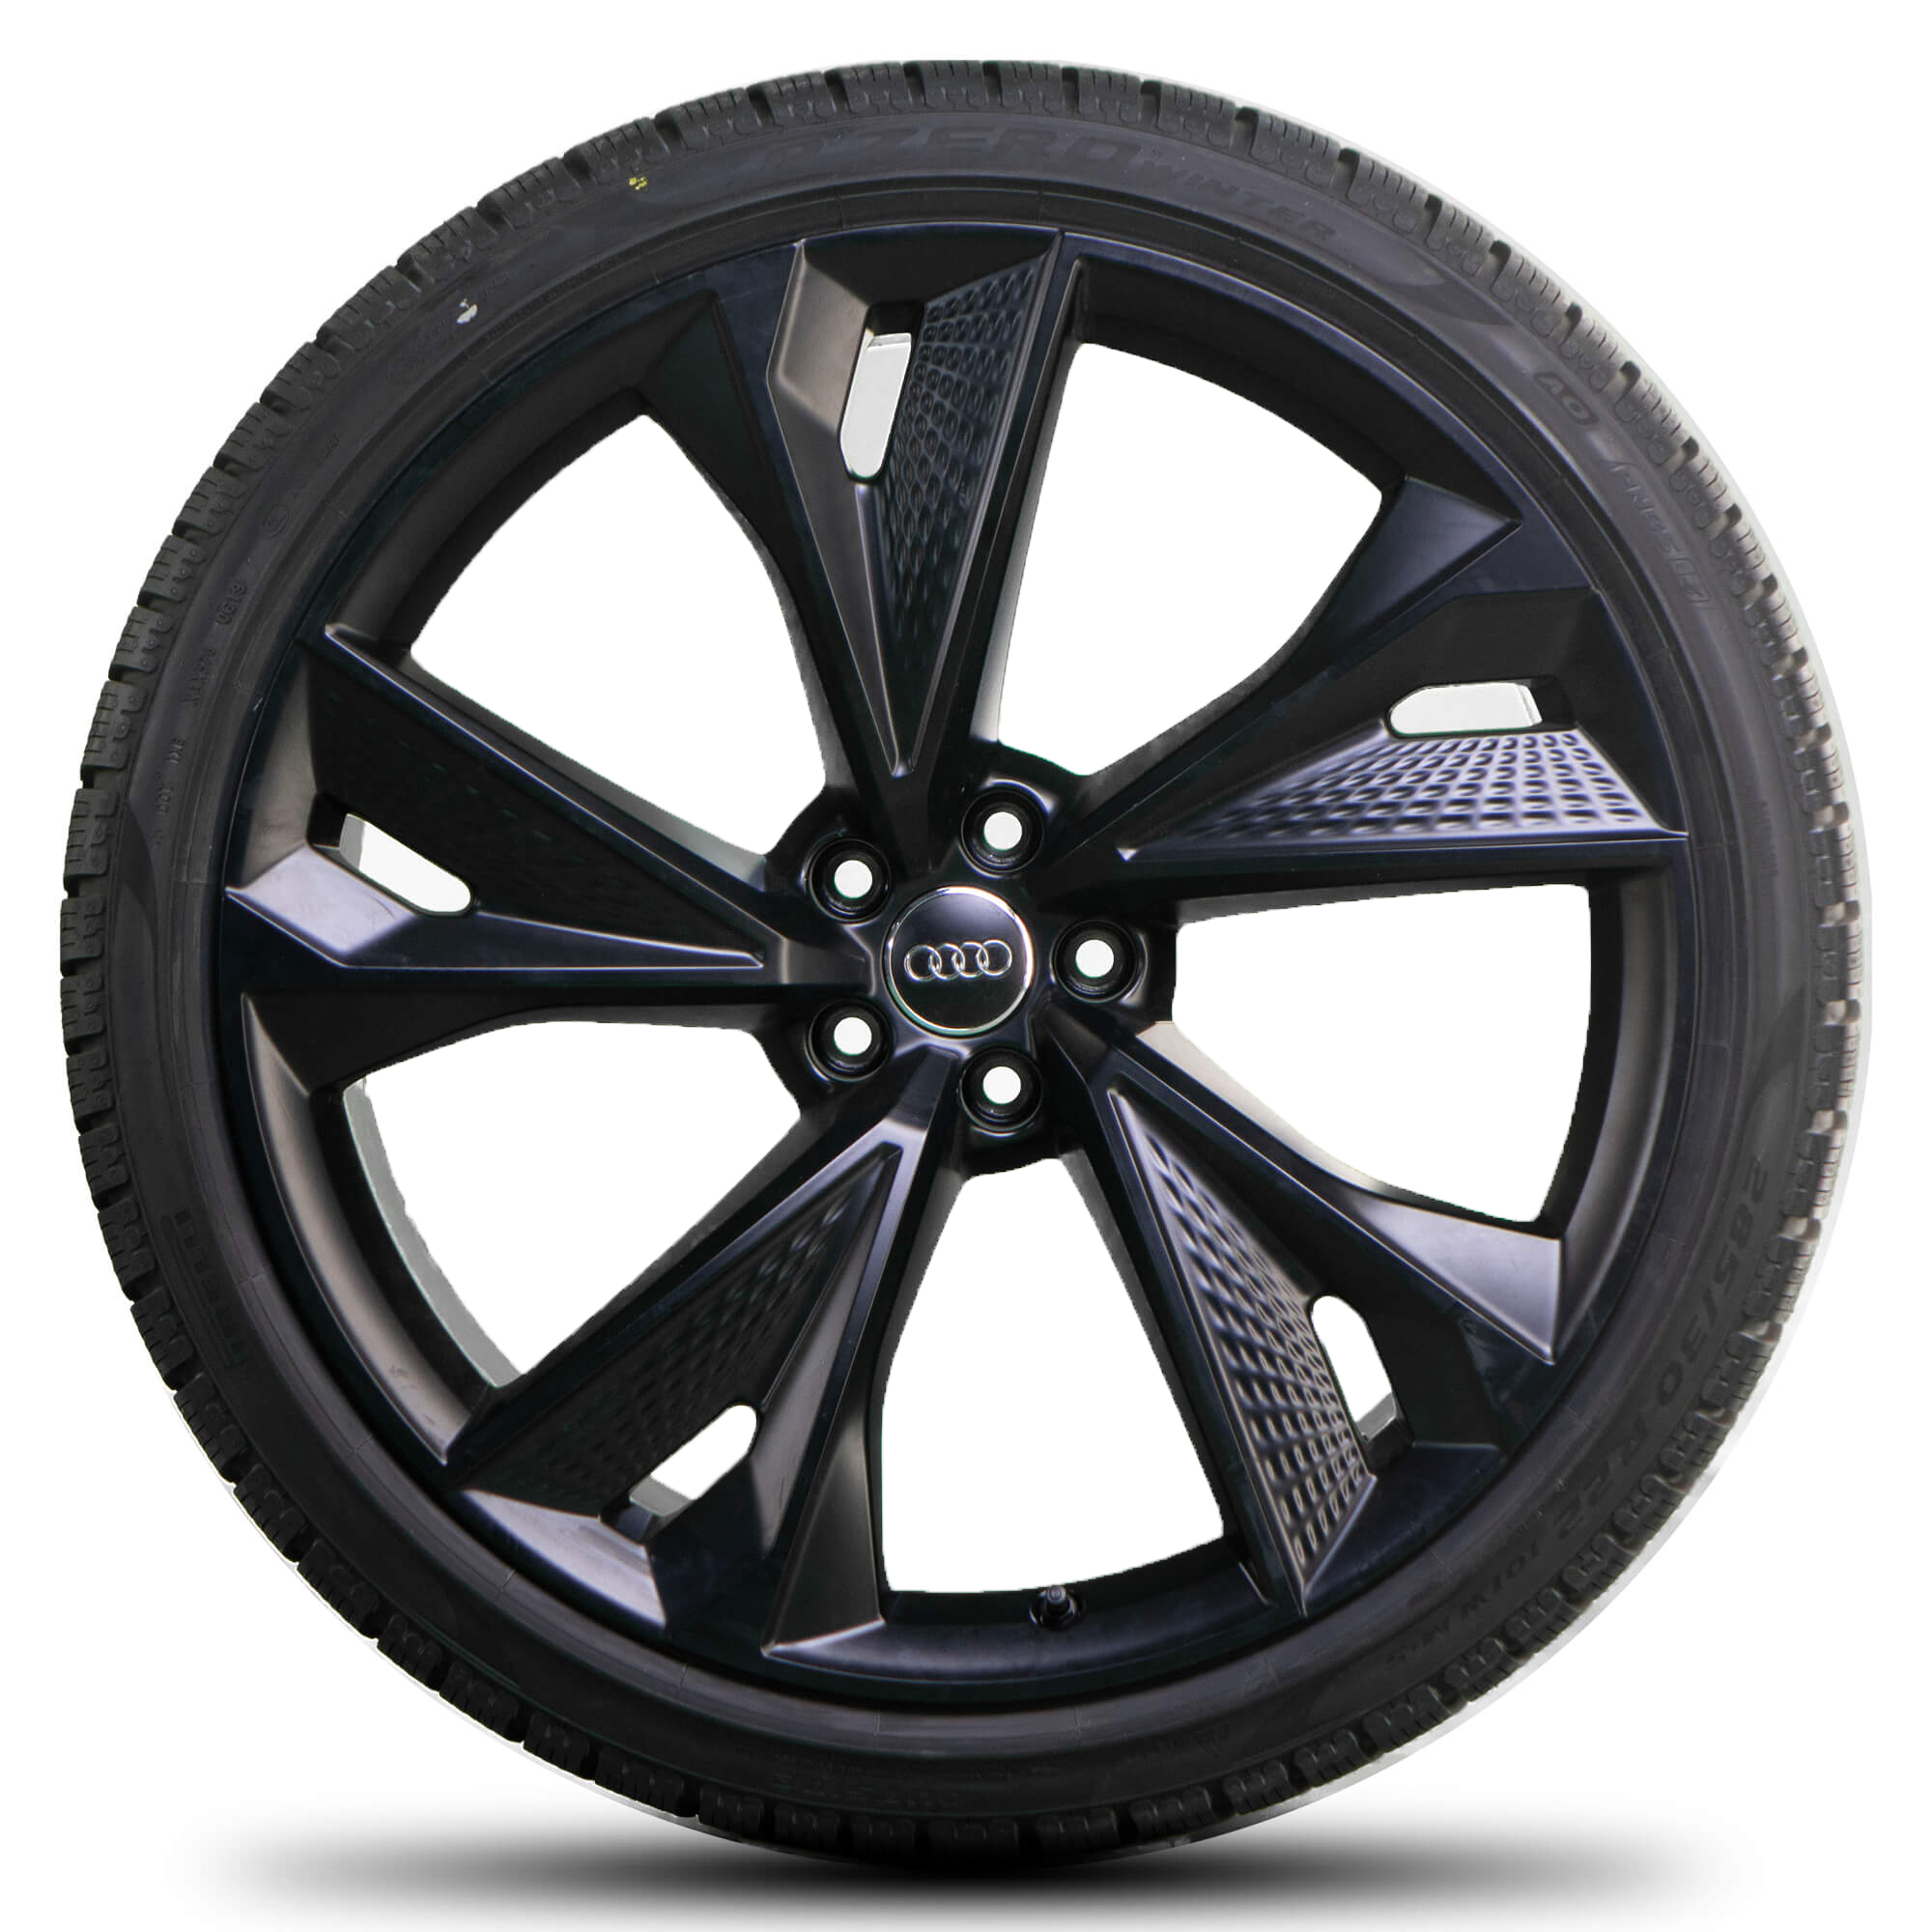 22 Inch Tires >> Audi 22 Inch Rims Rs6 Rs7 4k C8 Winter Complete Wheels Winter Tires Winter